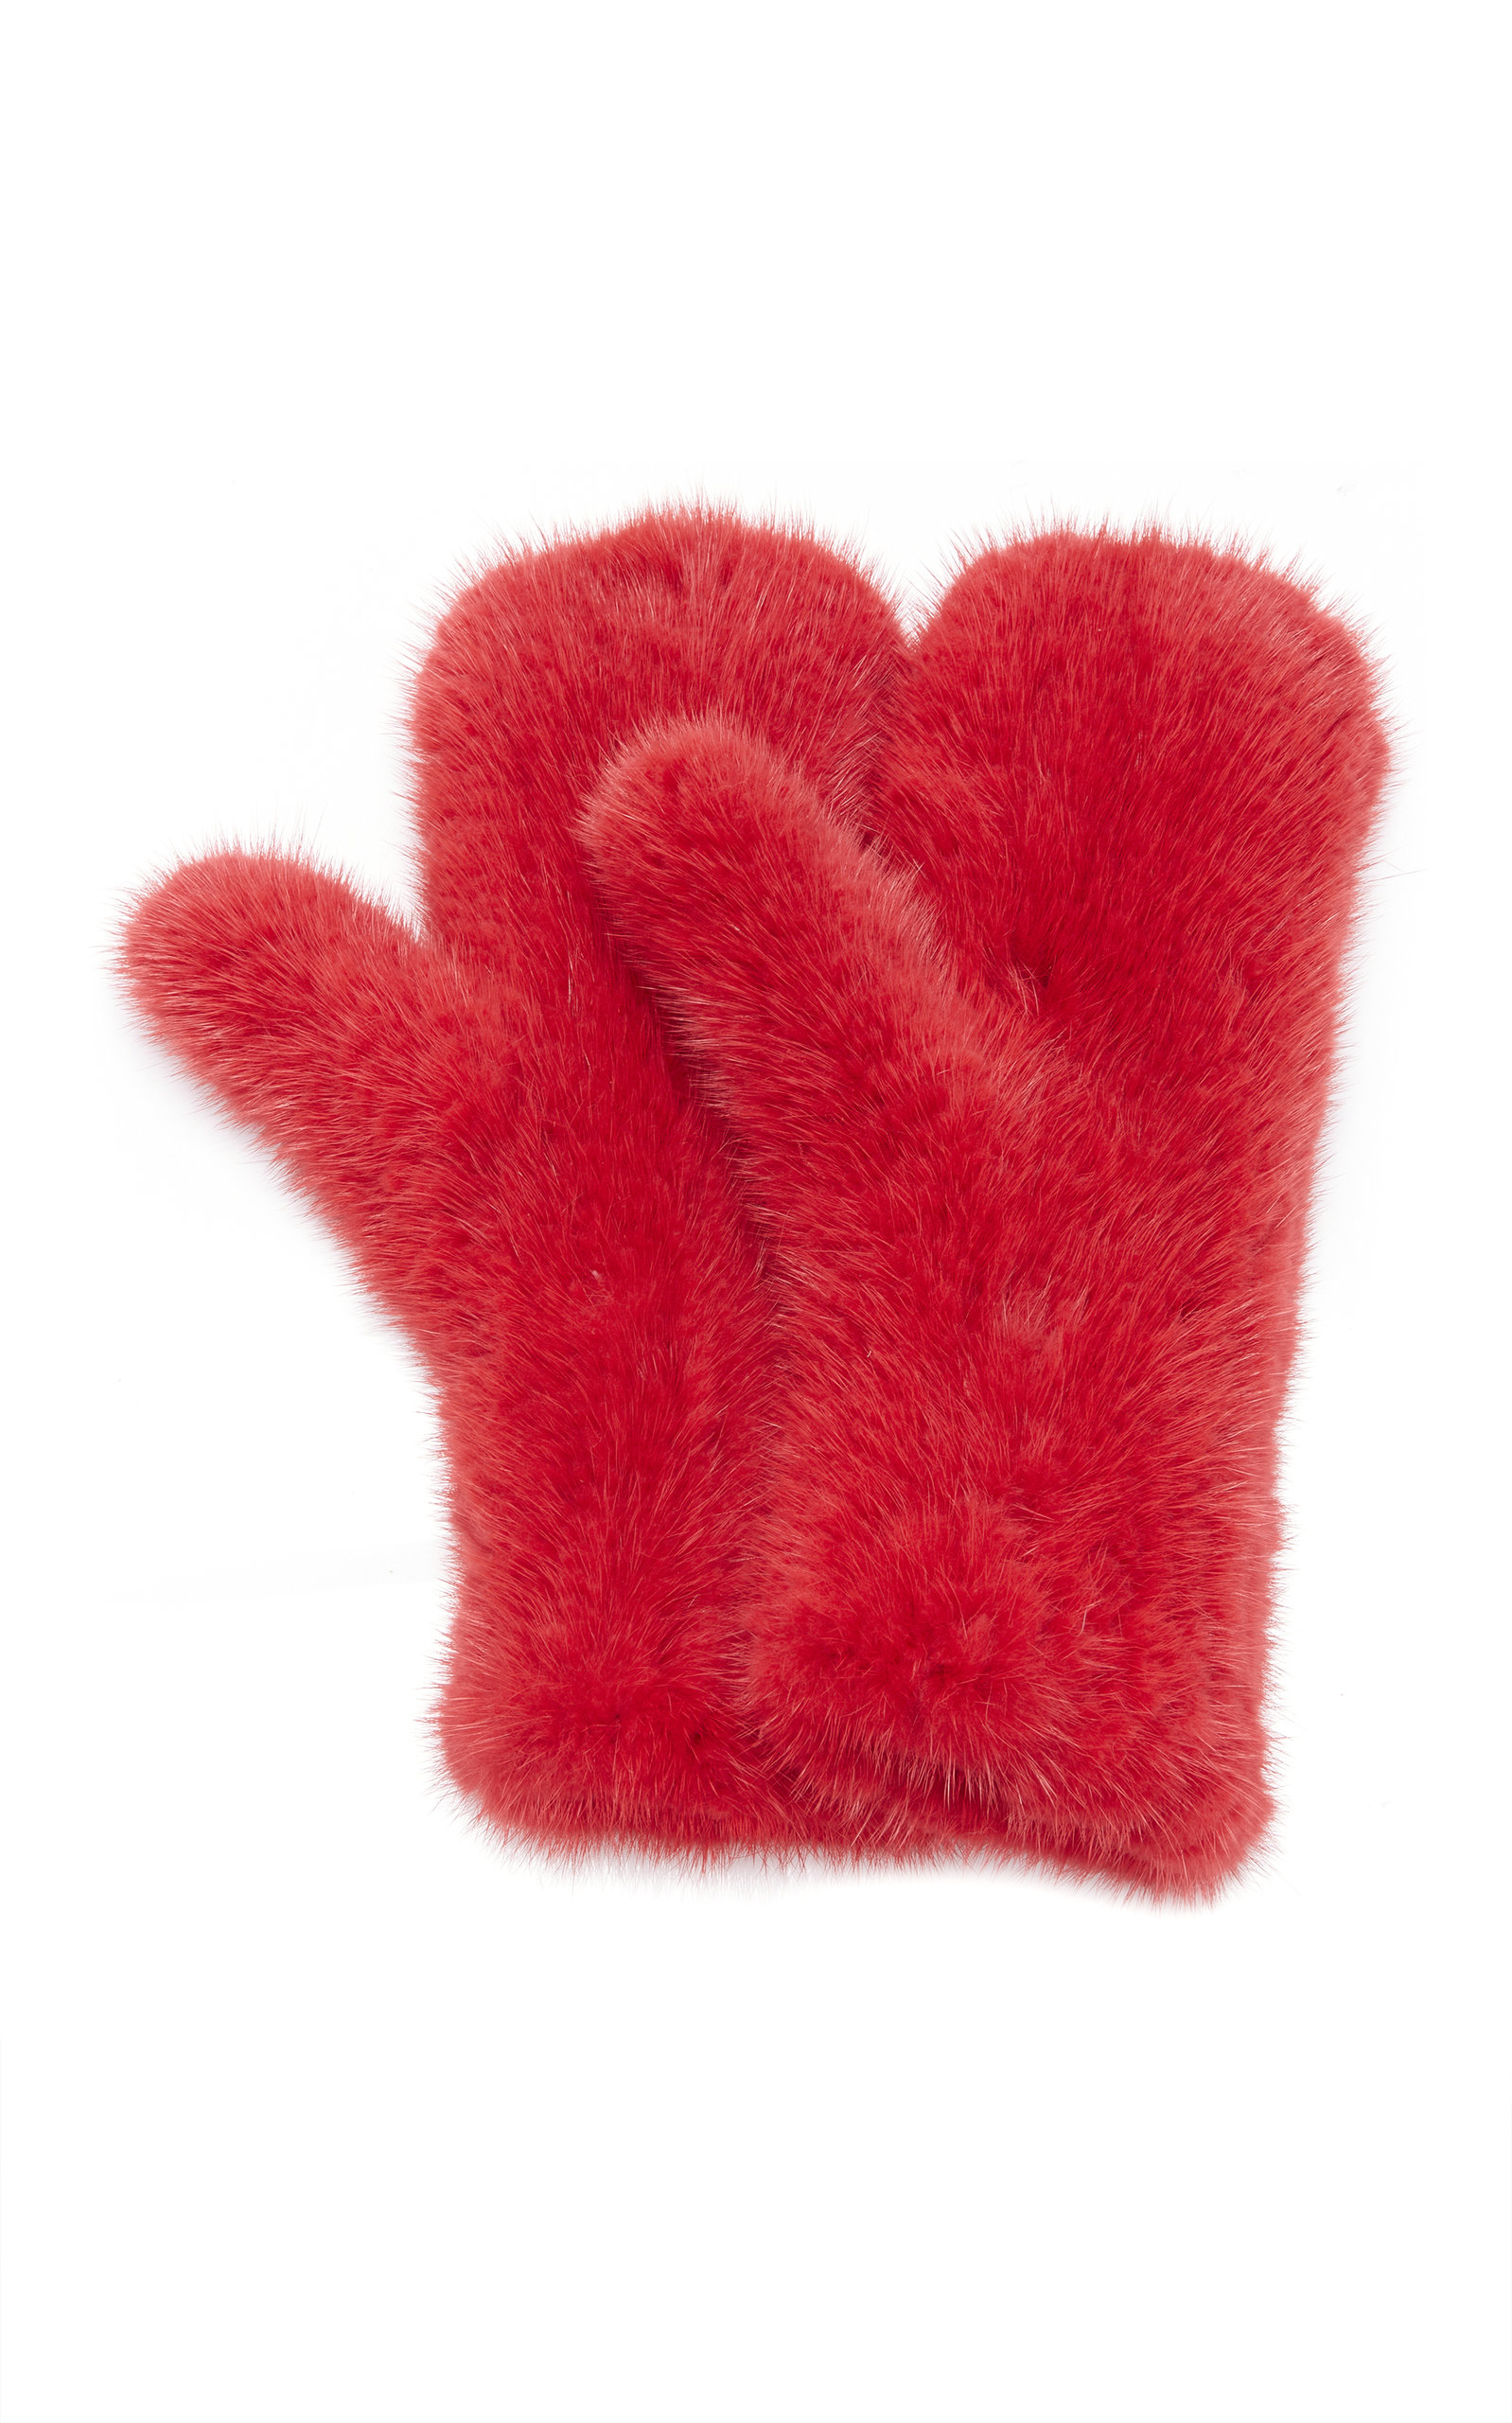 THE KNITTED MINK MITTENS